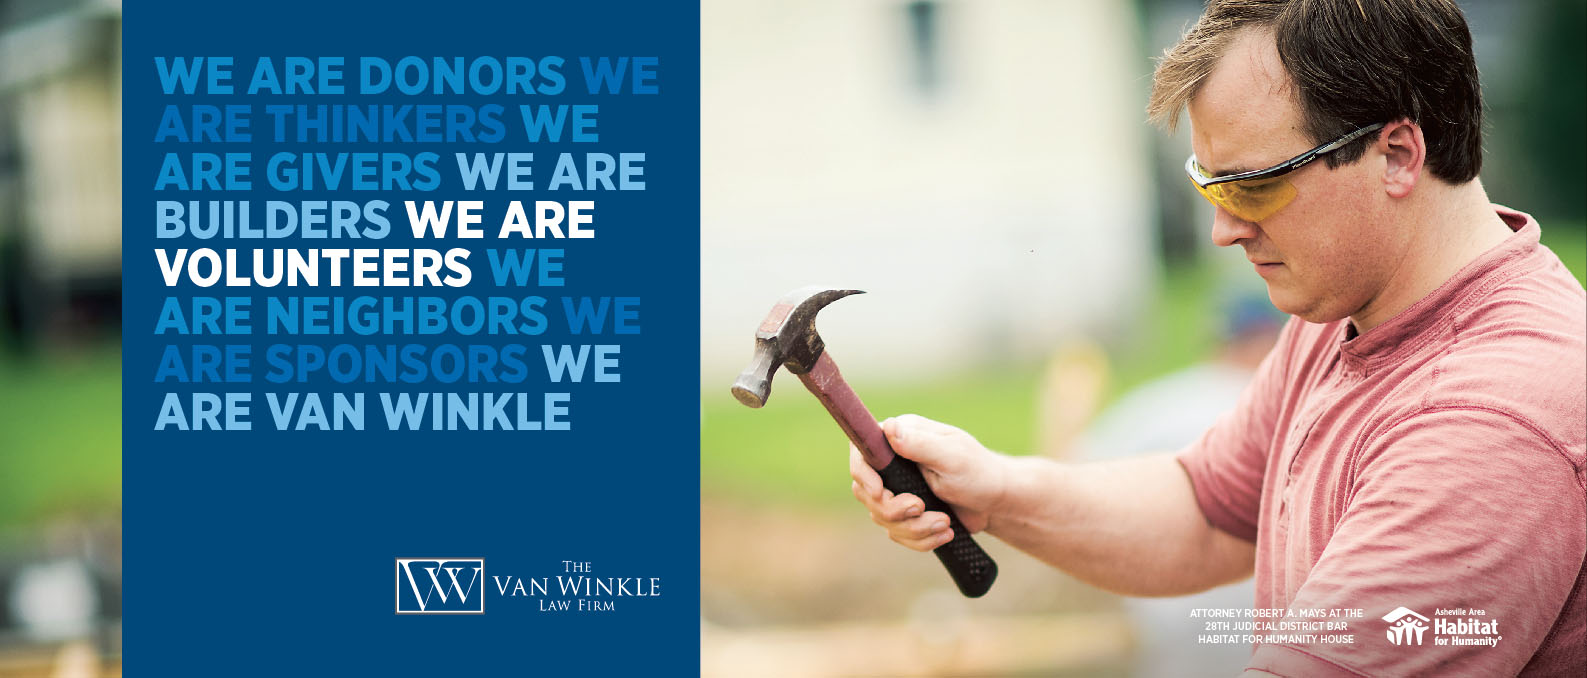 Portfolio We are Van Winkle Habitat for Humanity Advertisement